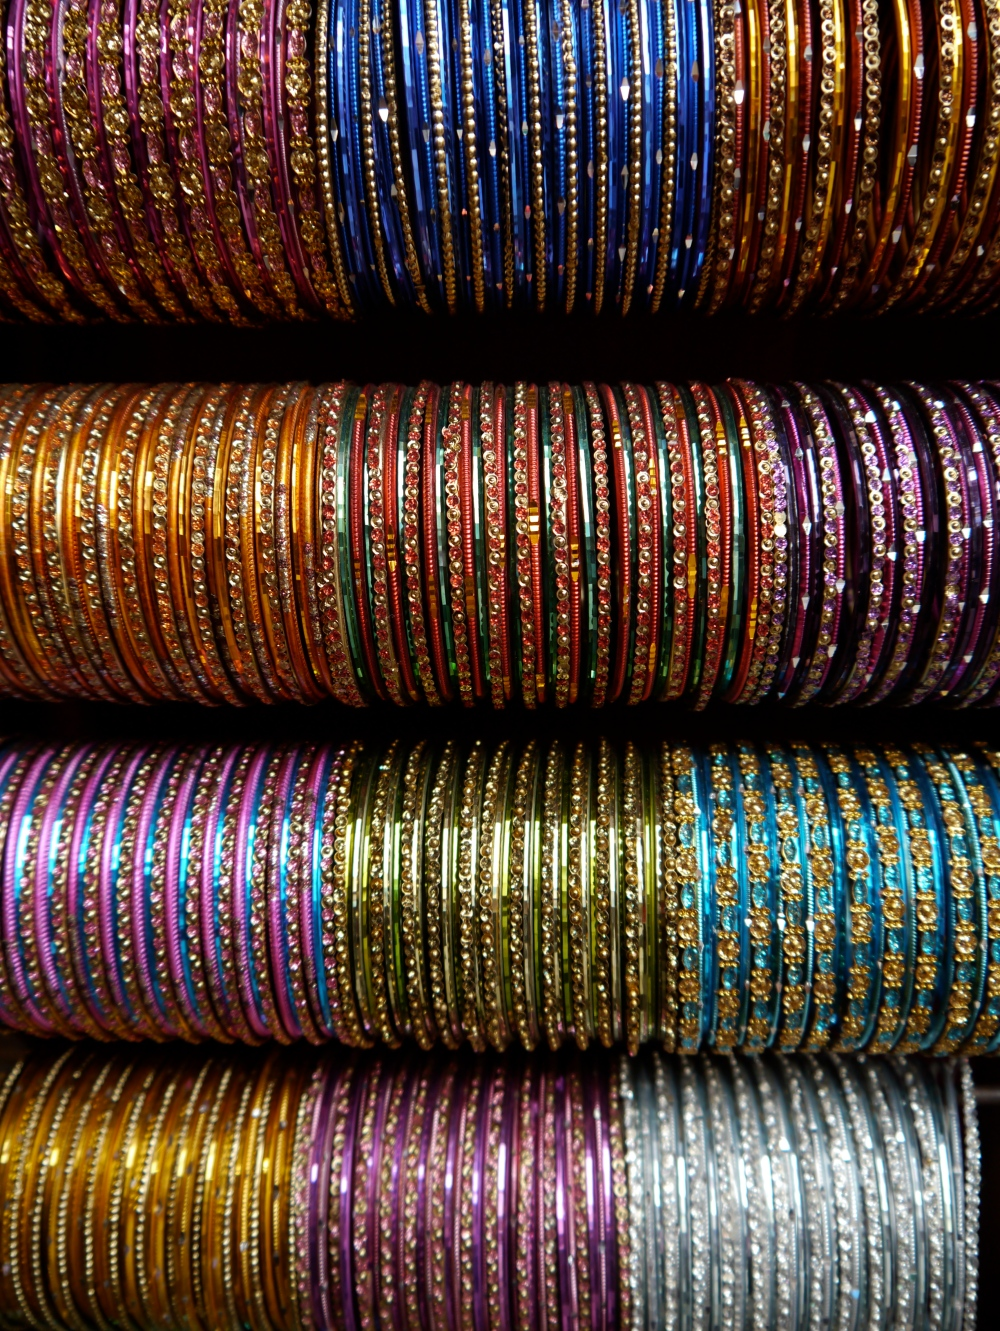 Bangalore women jangle, with arms full of bangles. Store them like this, to avoid all the tangles.